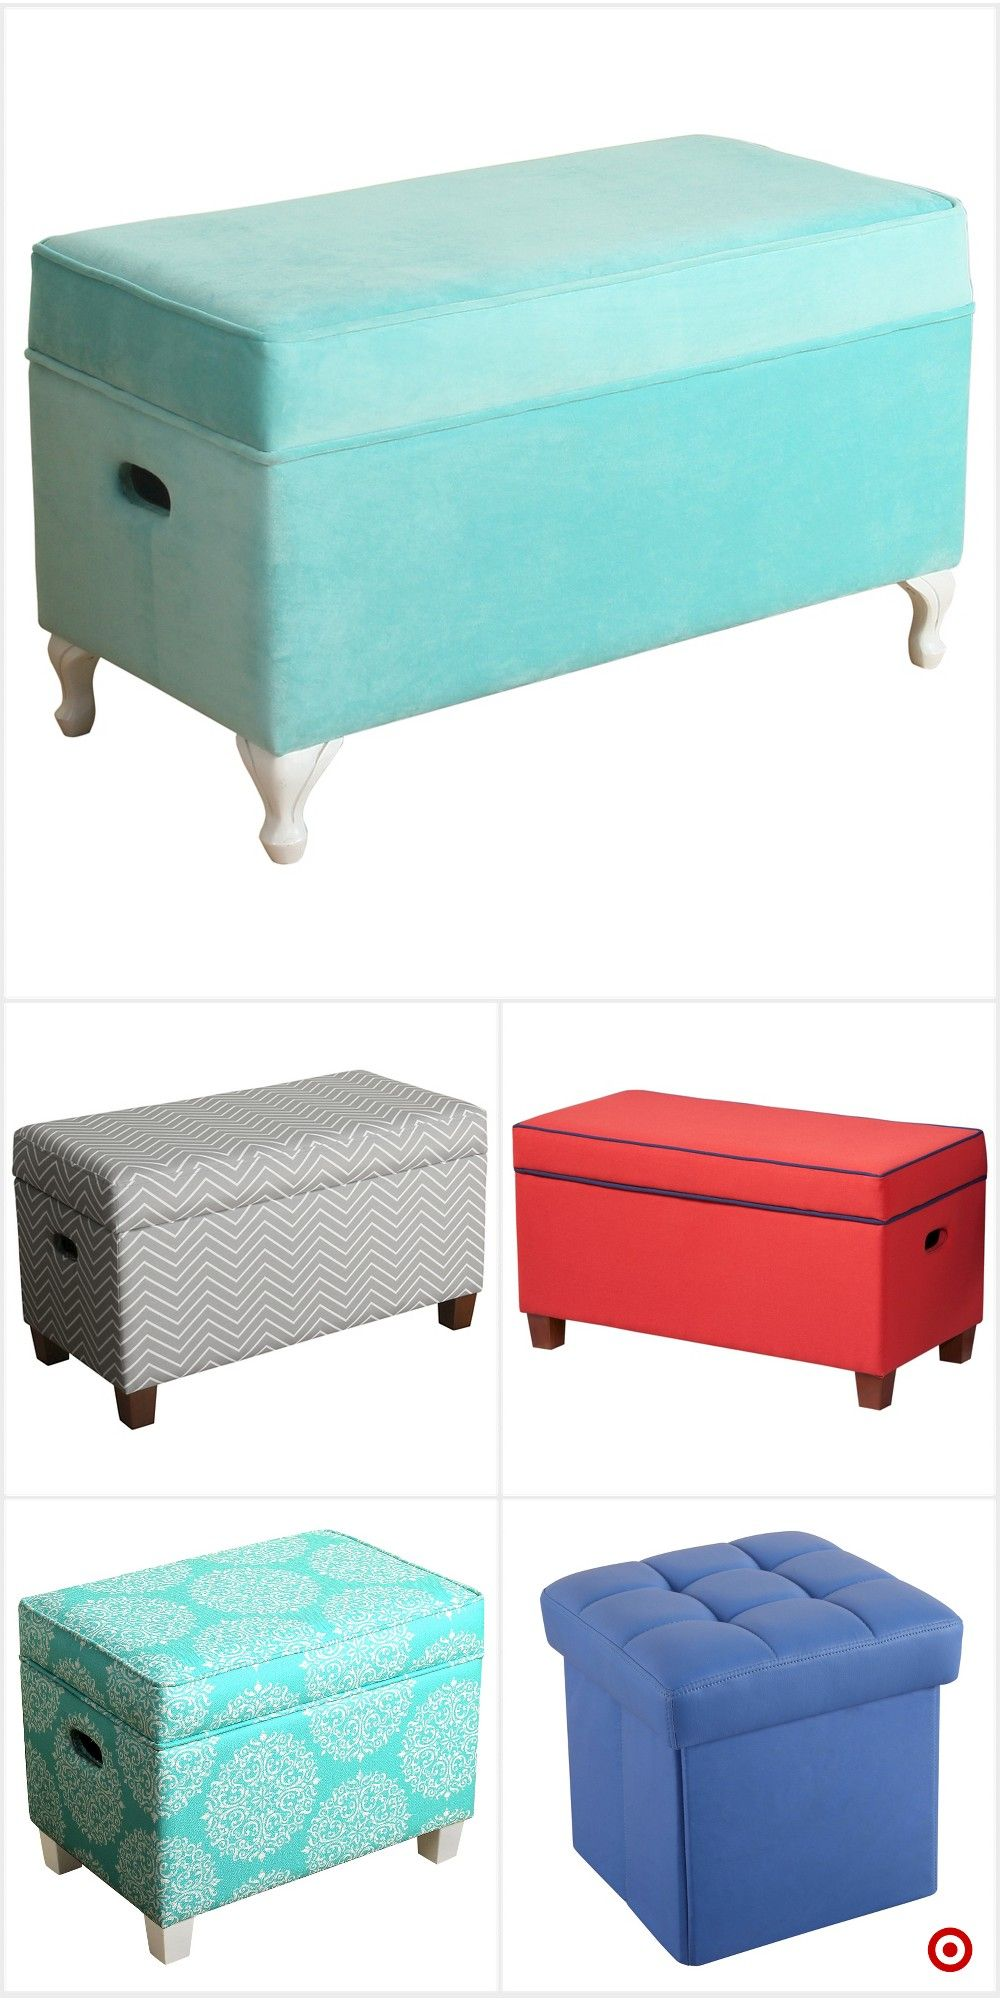 Awe Inspiring Shop Target For Kids Storage Ottoman You Will Love At Great Alphanode Cool Chair Designs And Ideas Alphanodeonline